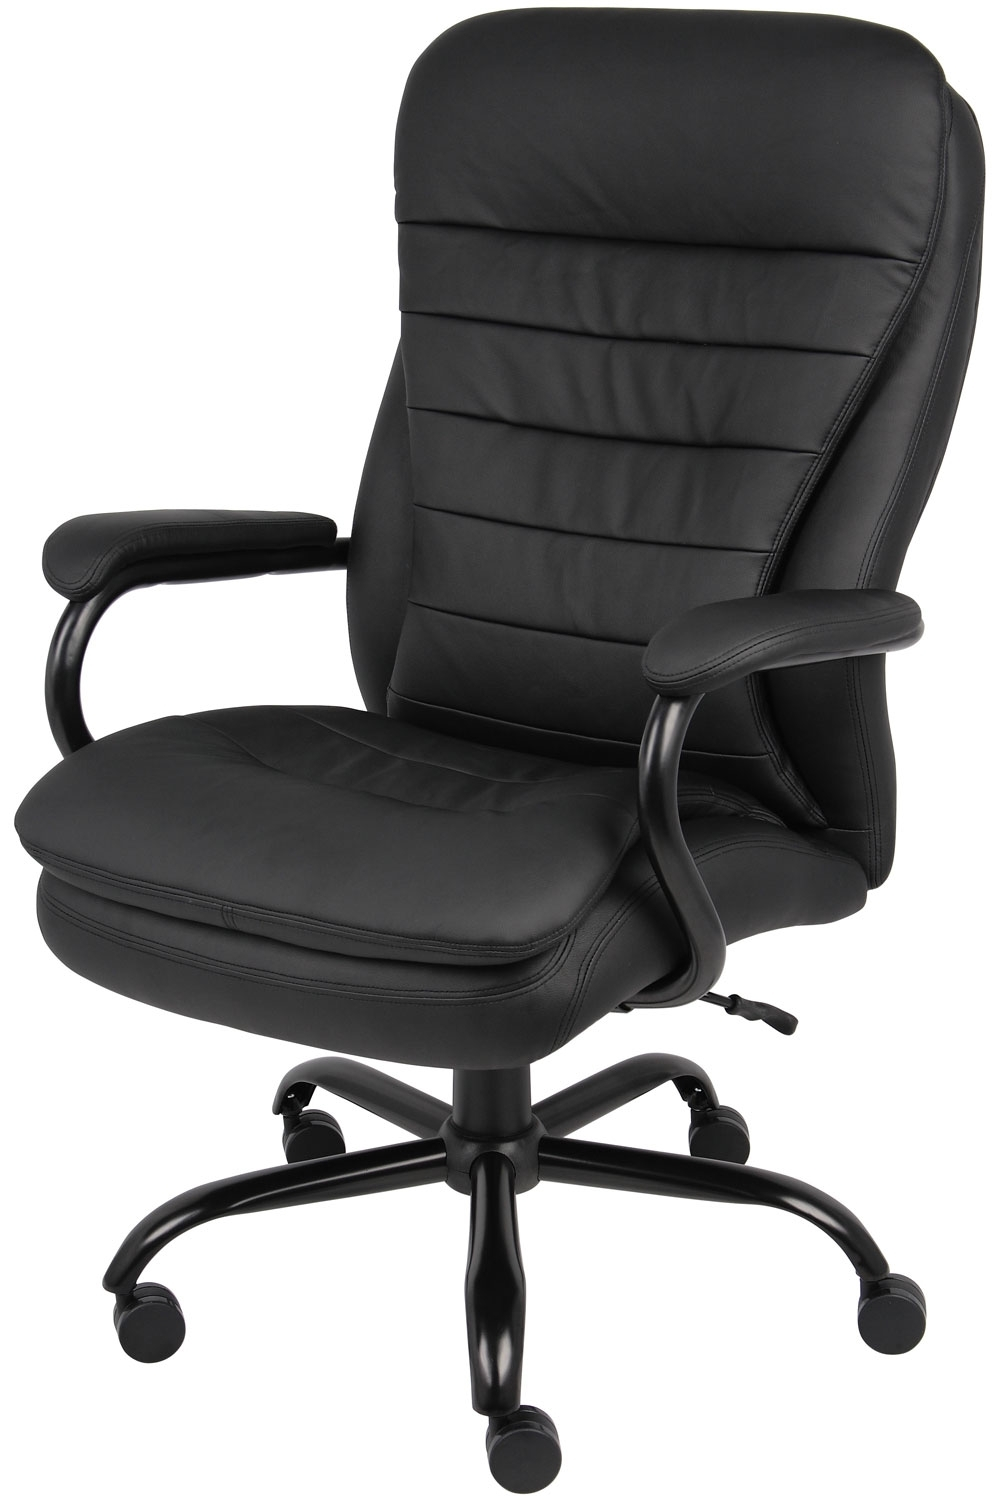 Most Popular B991 Cp Big And Tall Executive Office Chair In Caresoft Vinyl Inside Black Executive Office Chairs (View 10 of 20)